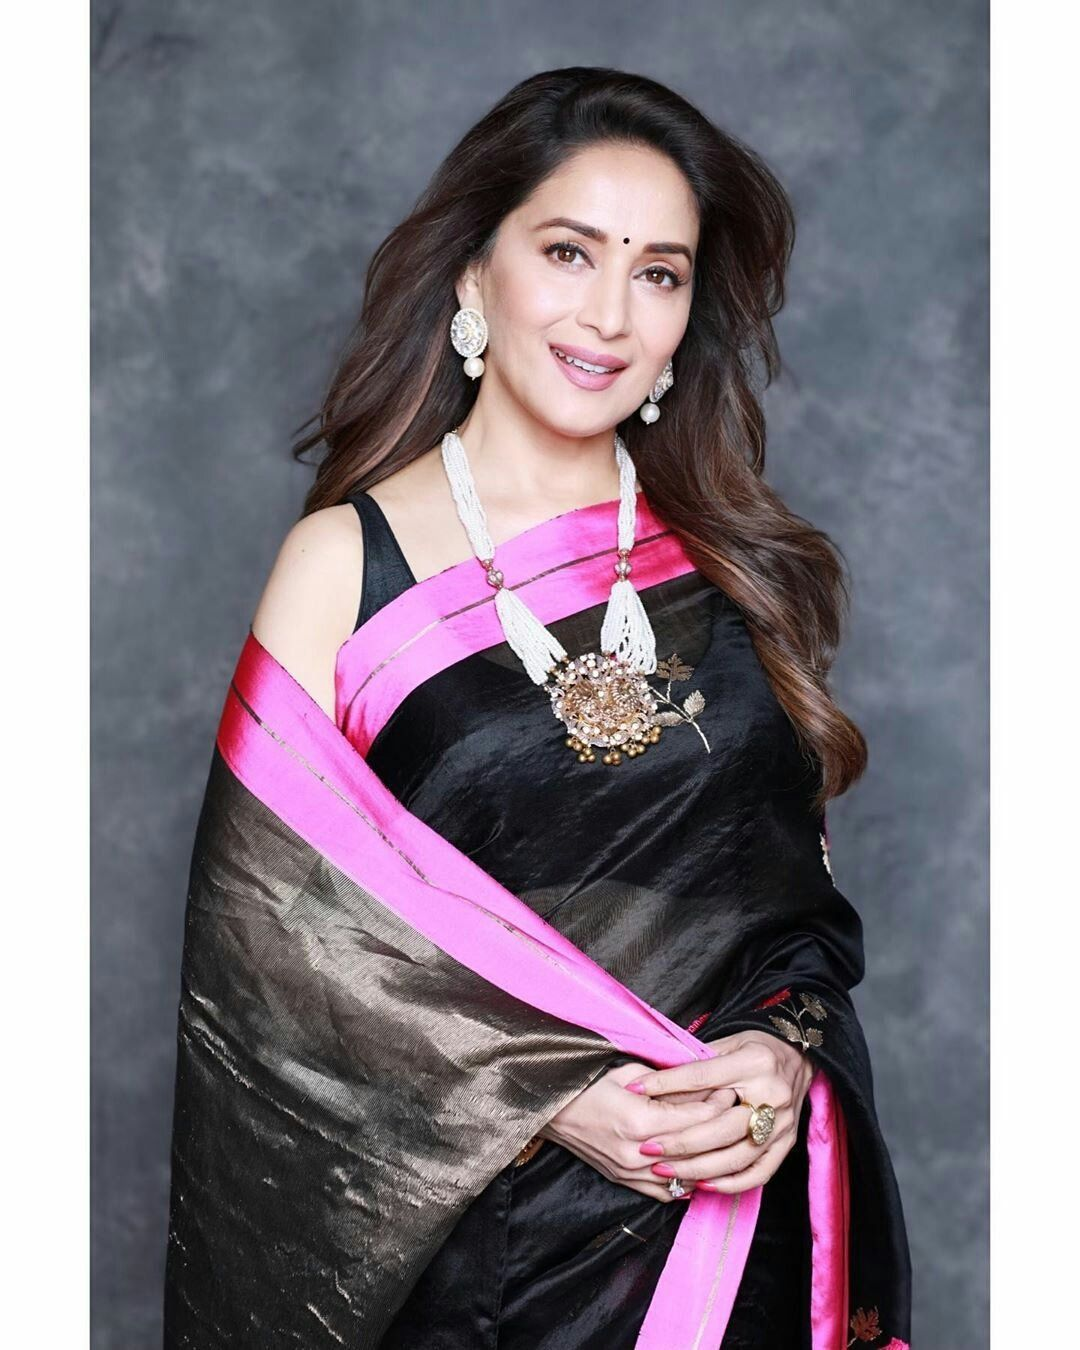 120 Madhuri Dixit Latest Pics, Full Hd Images And Photo -1349